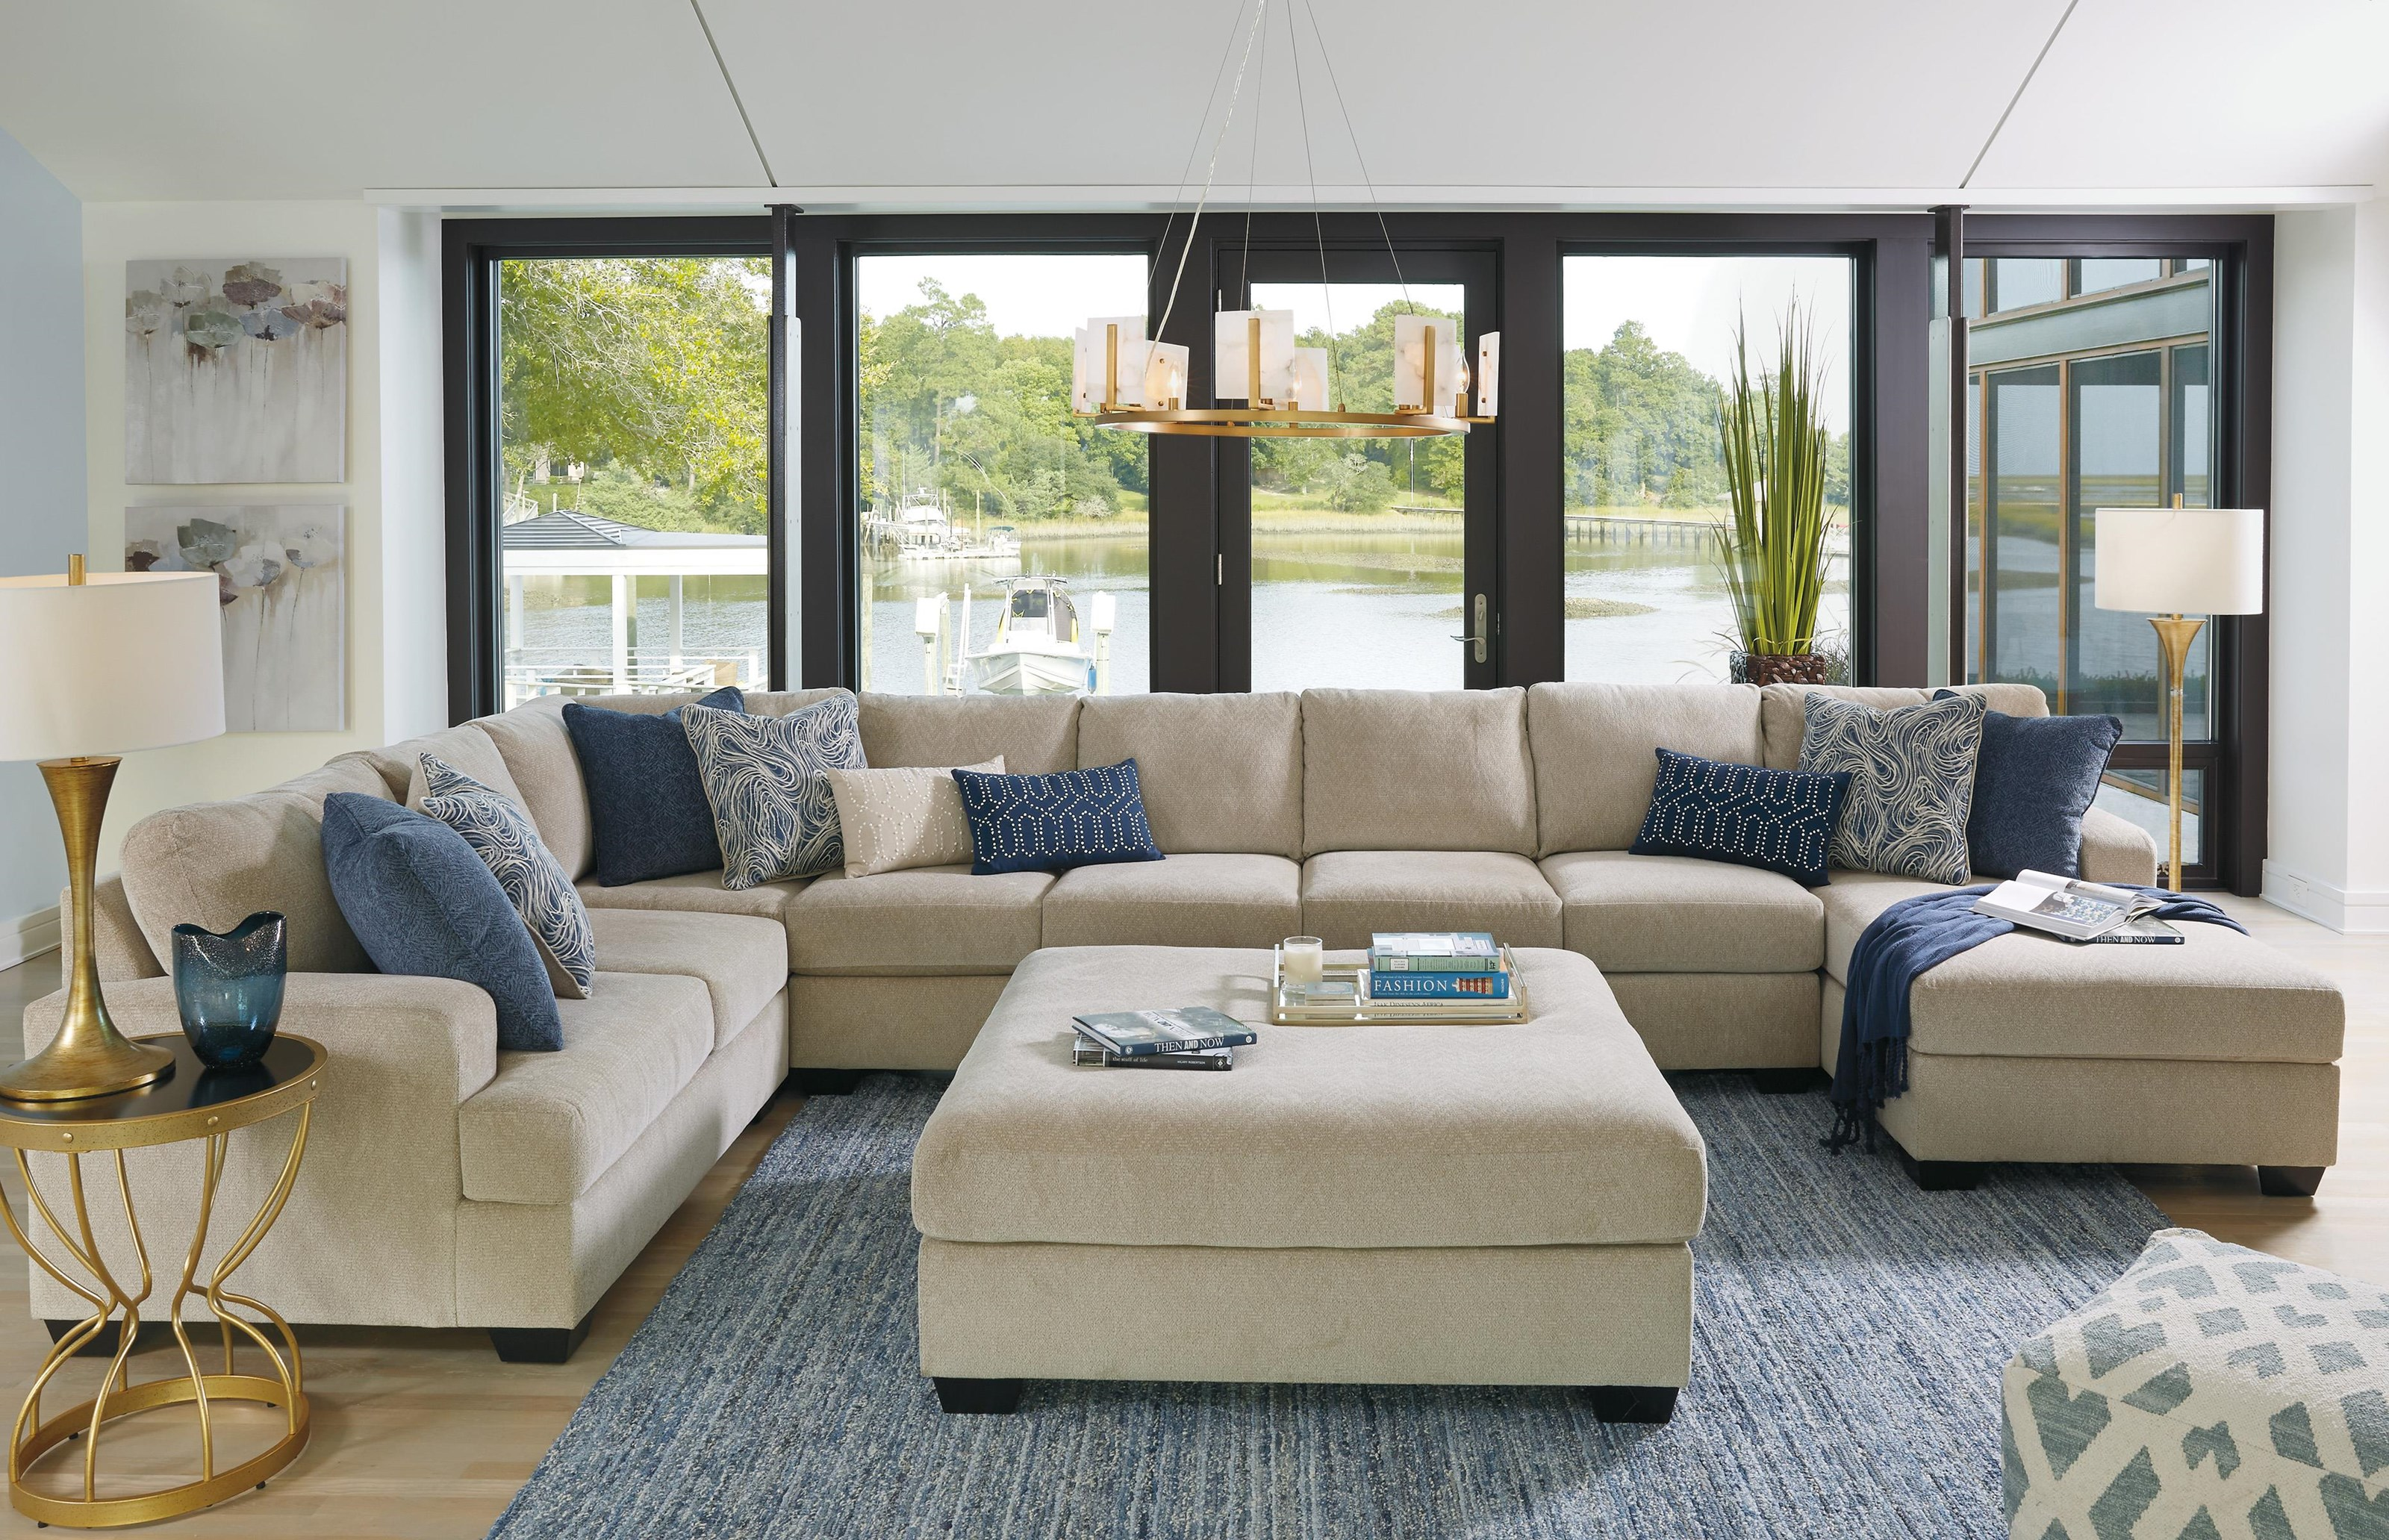 Enola 5PC Sectional and Ottoman Set by Ashley Furniture at Sam Levitz Furniture